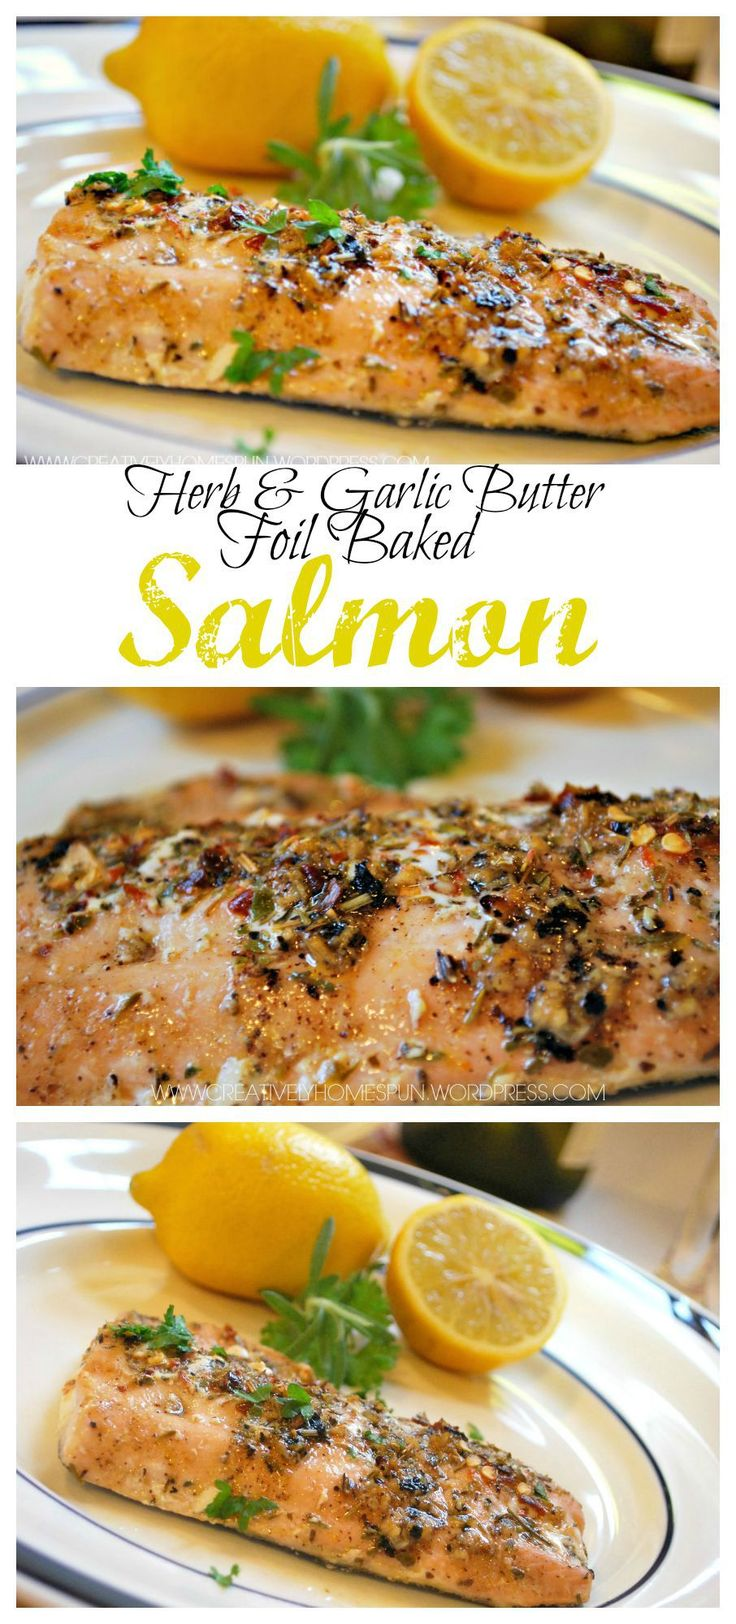 Herb Garlic Butter Foil Baked Salmon #dinner #delicious- try w/ a white fish